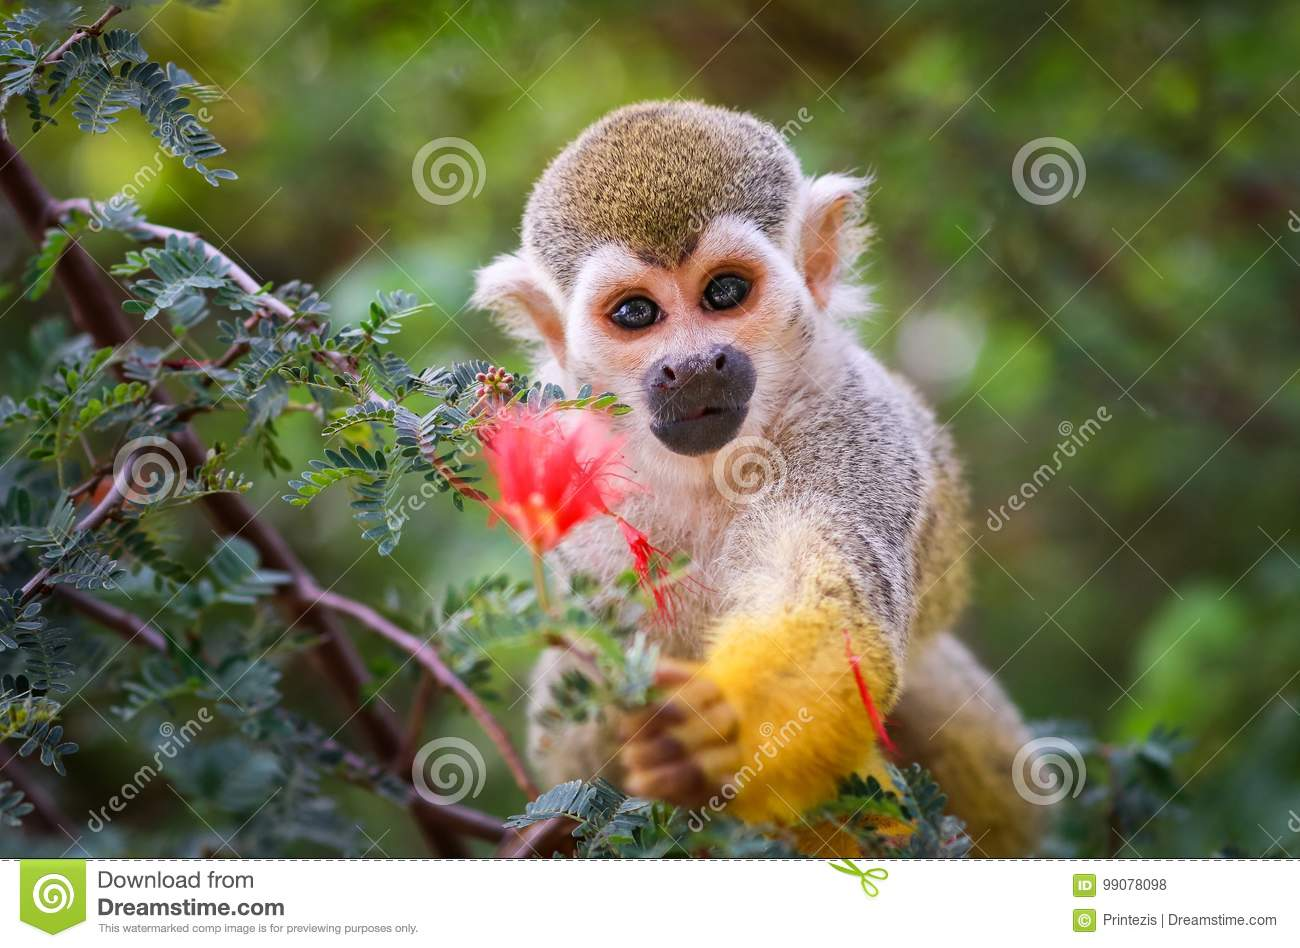 Baby Squirrel Monkey and Flower !